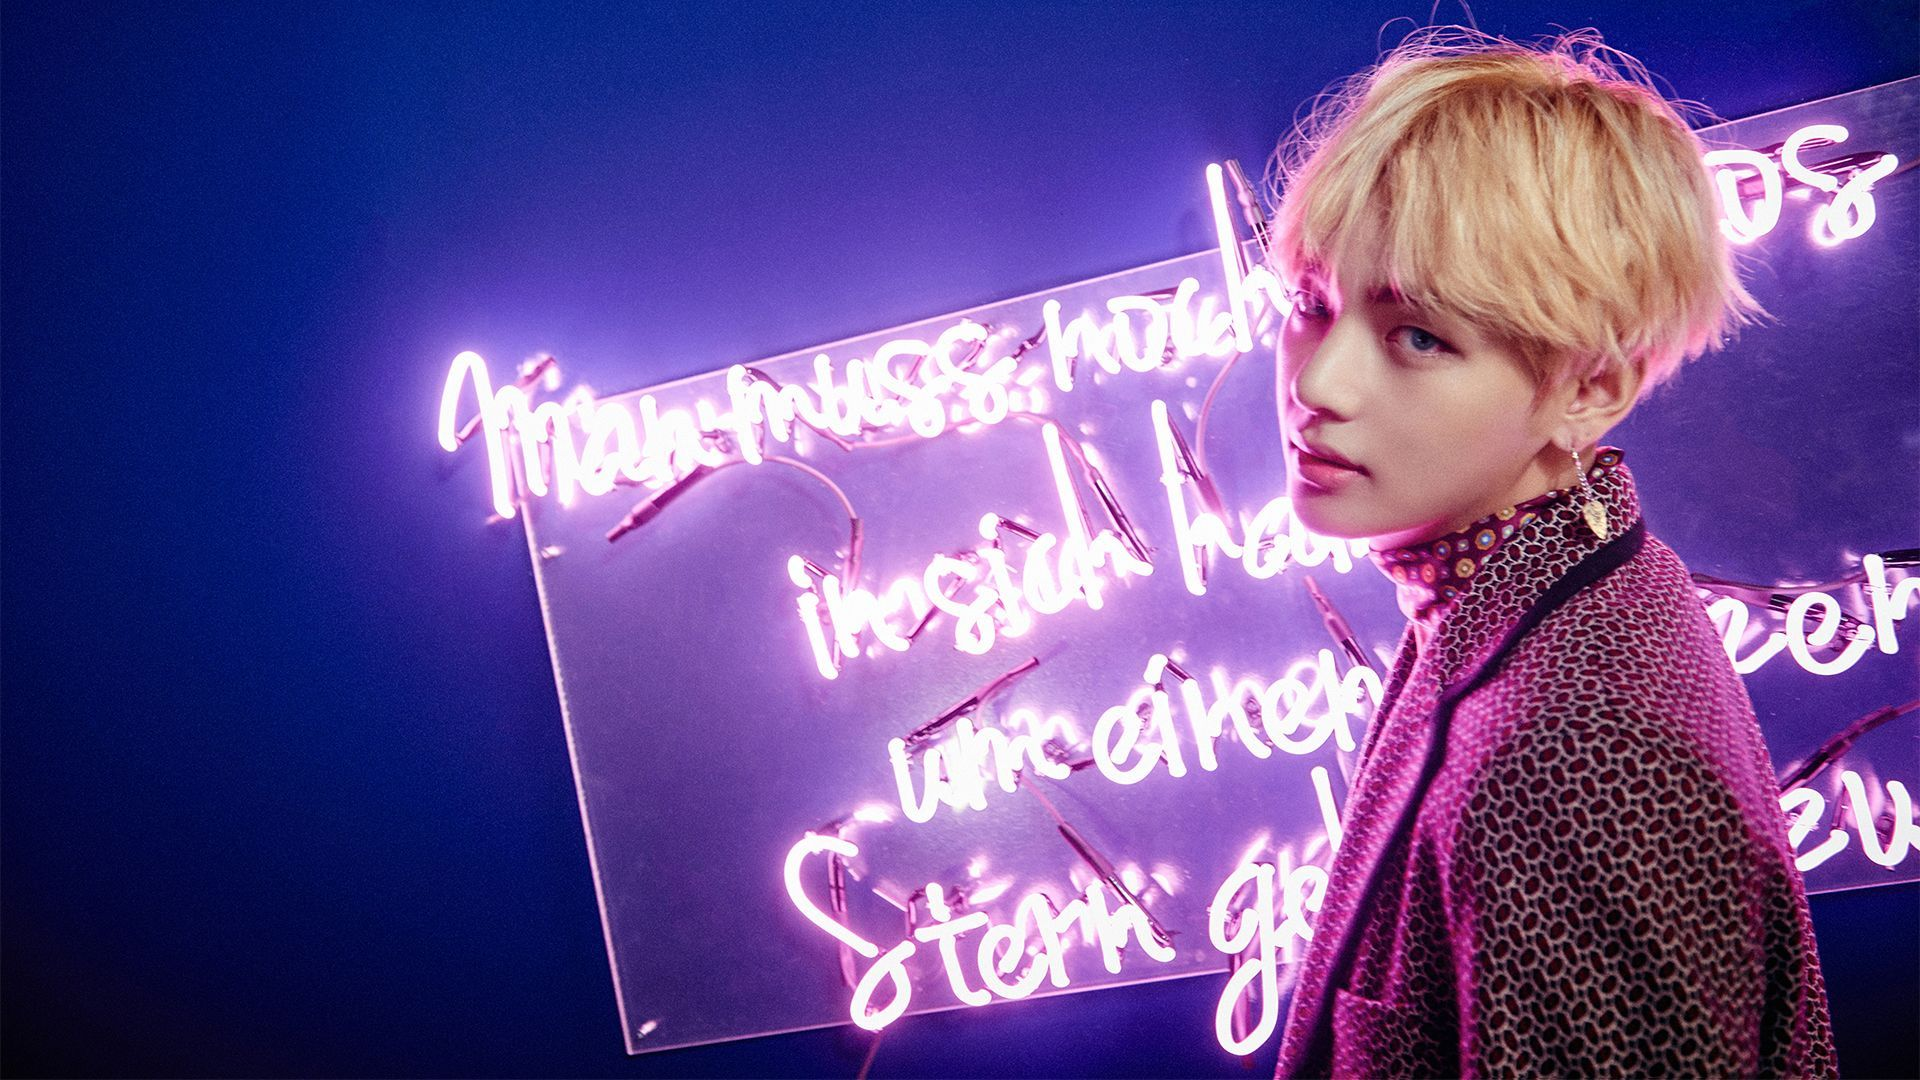 Bts V Computer Wallpapers Top Free Bts V Computer Backgrounds Wallpaperaccess